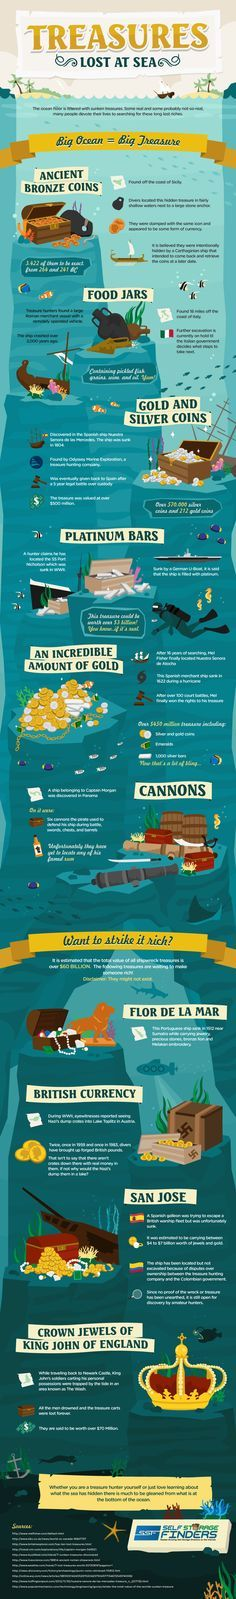 Treasures Lost at Sea  #infographic #Treasures #Sea #history